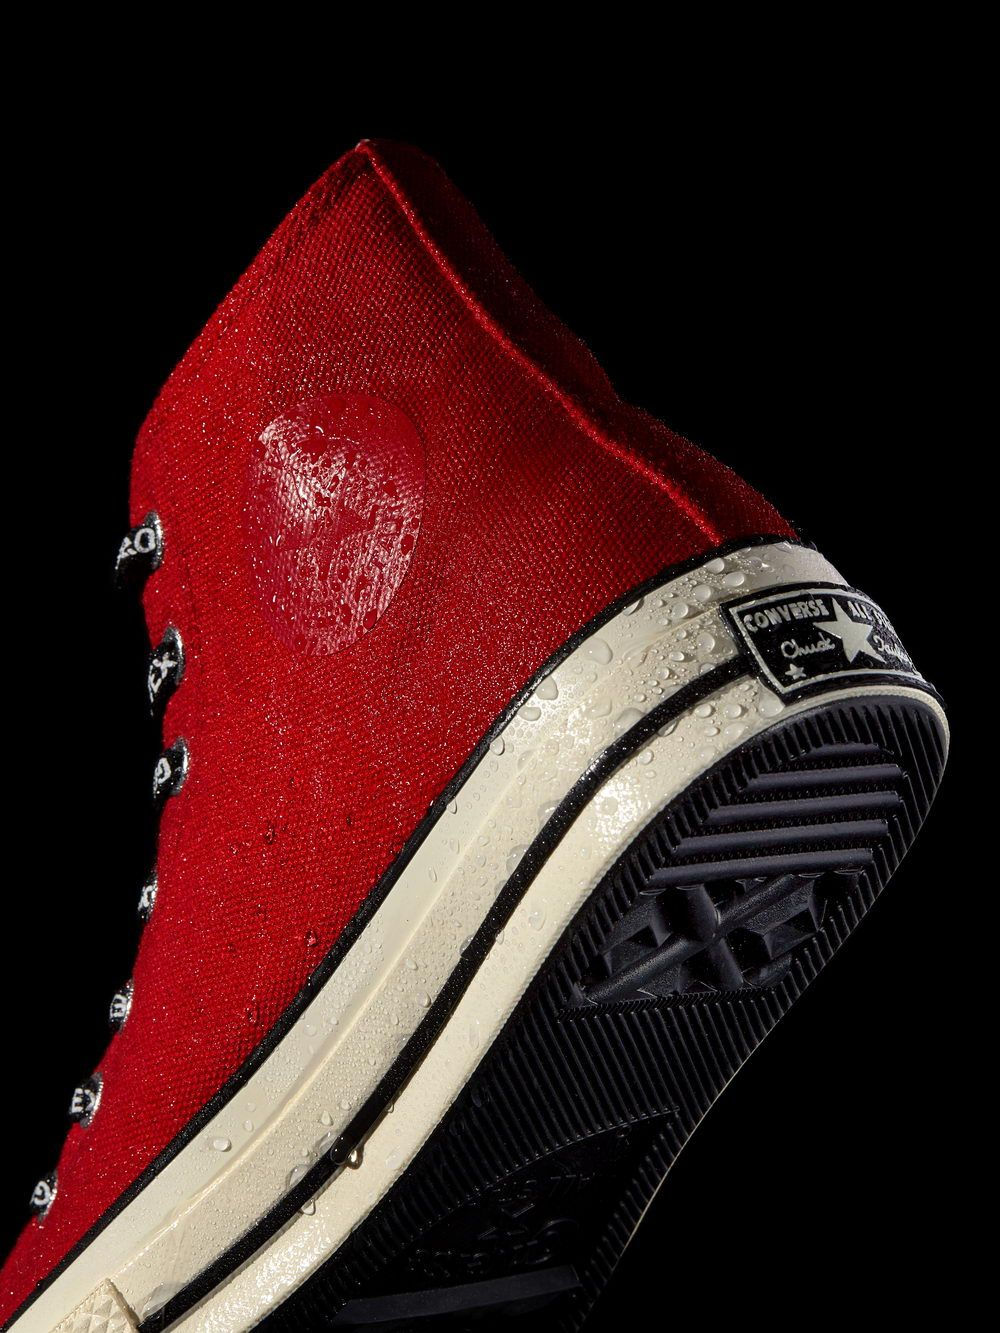 CT70 GORE-TEX_ENAMEL RED HI_detail_RT_LR_resize